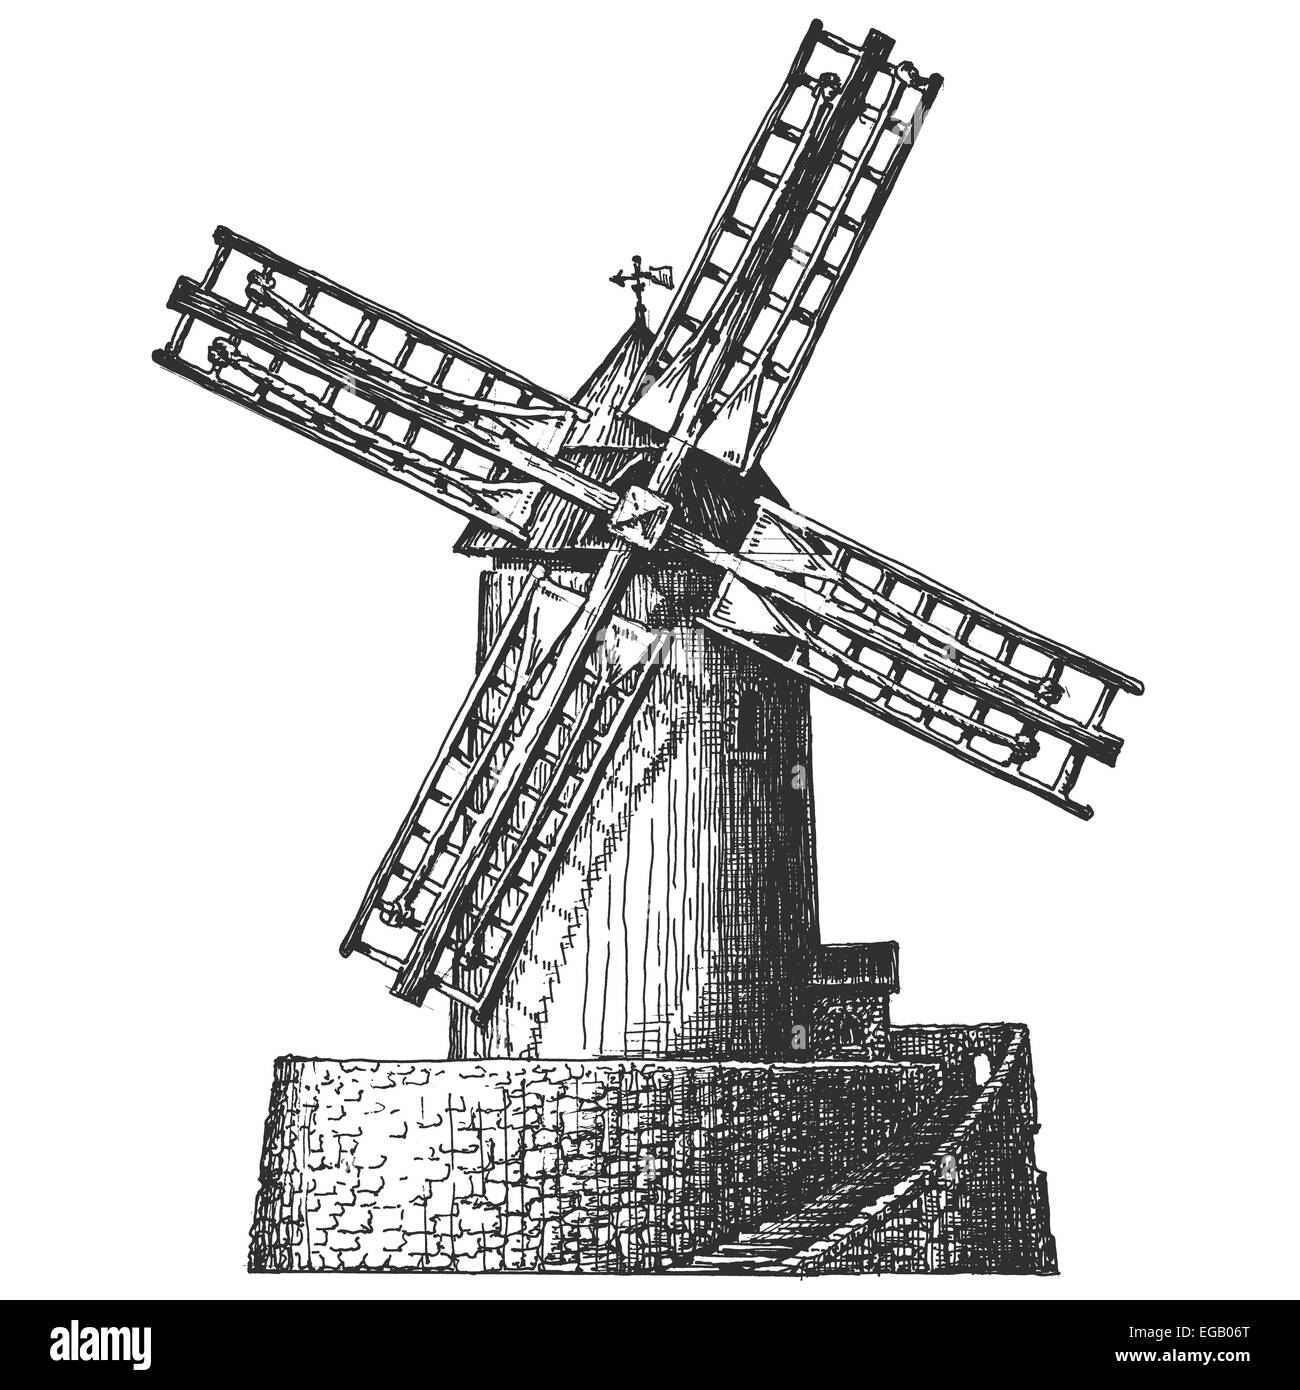 sketch Old windmill on a white background vector illustration